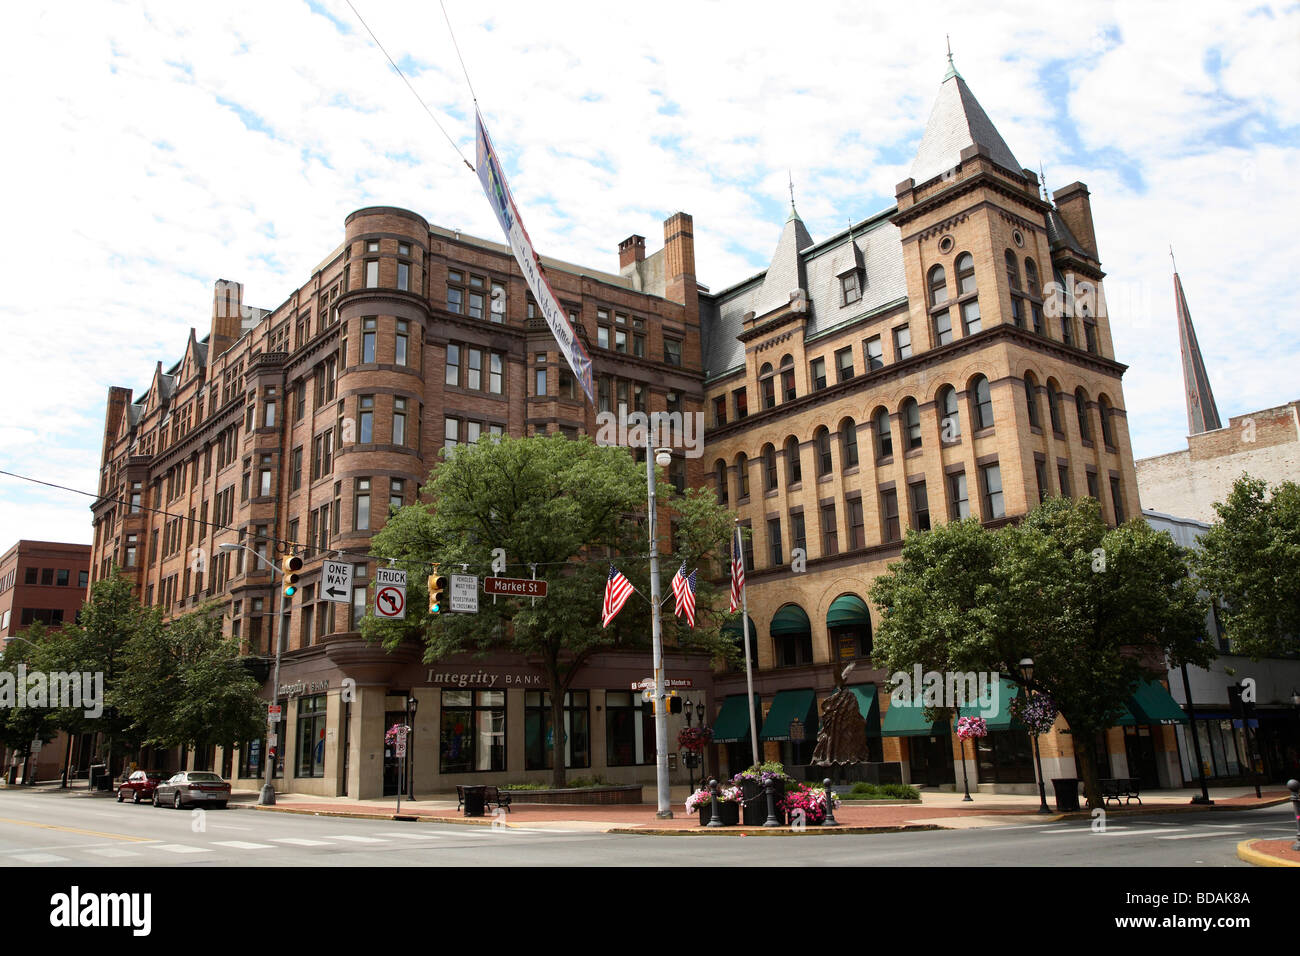 Two large buildings dominate the southwest side of Continental Square, York Pennsylvania. - Stock Image